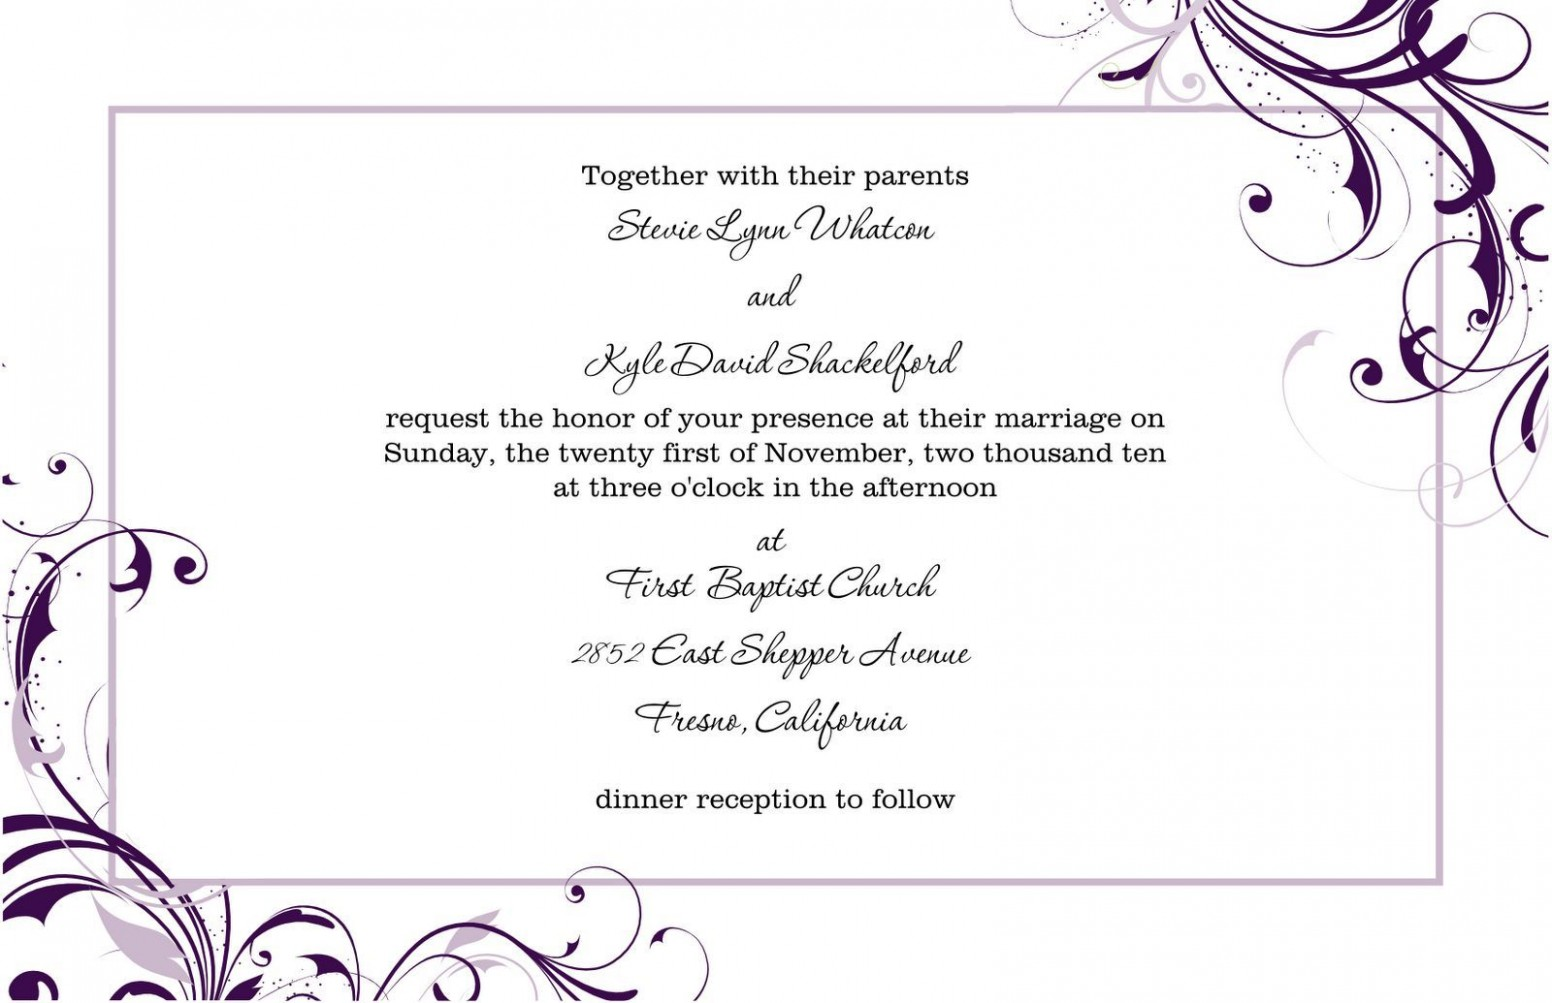 invitation card template landscape  Pin by Marina on wedding invitation letter in 2019   Free ..